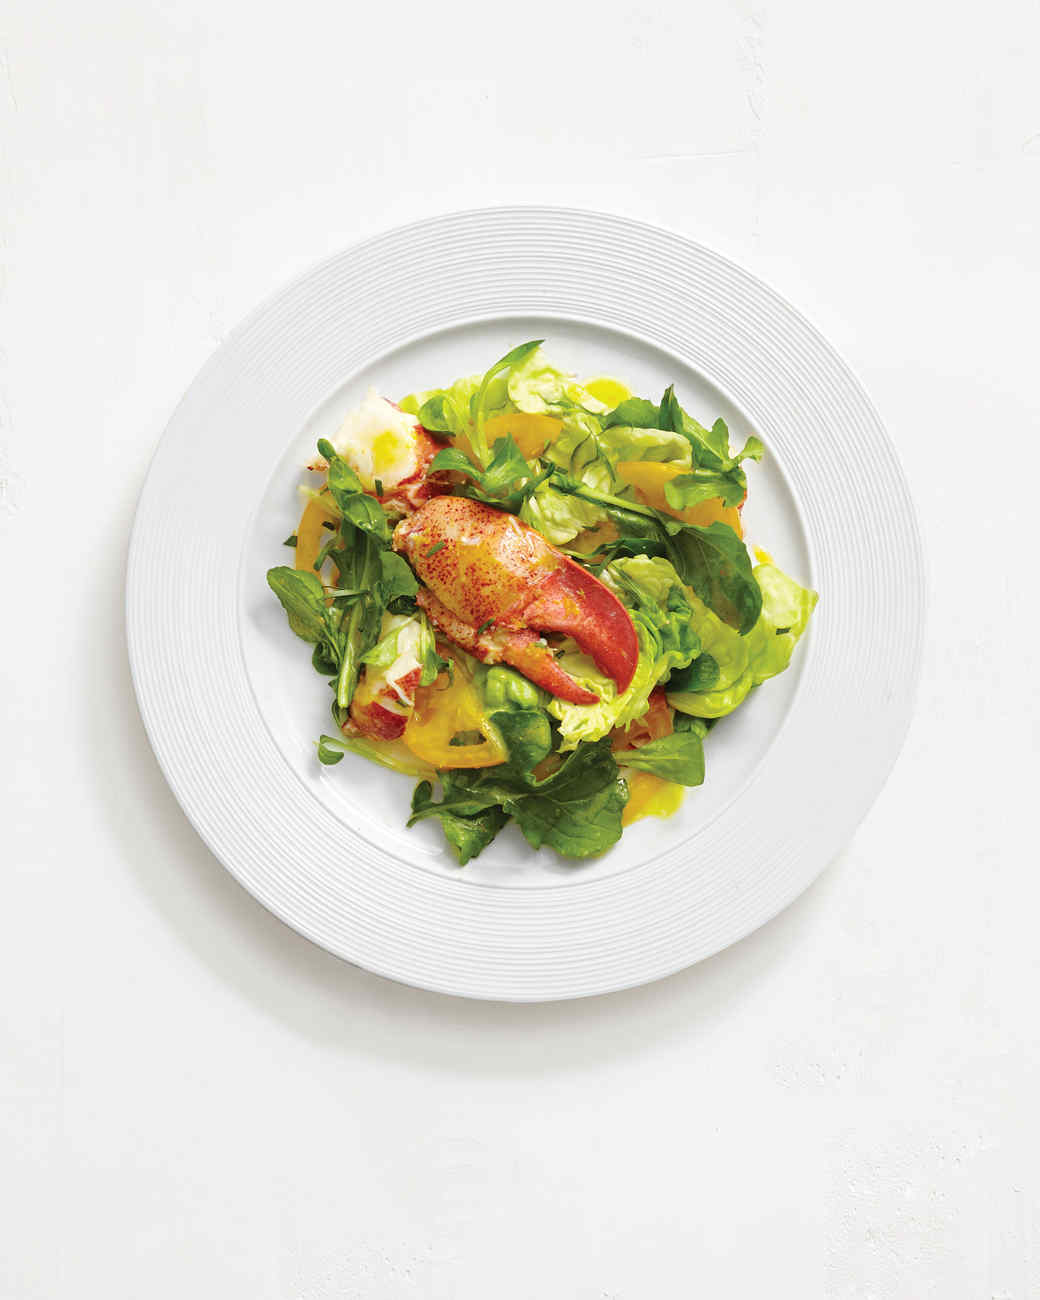 Lobster Salad with Greens and Citrus Vinaigrette